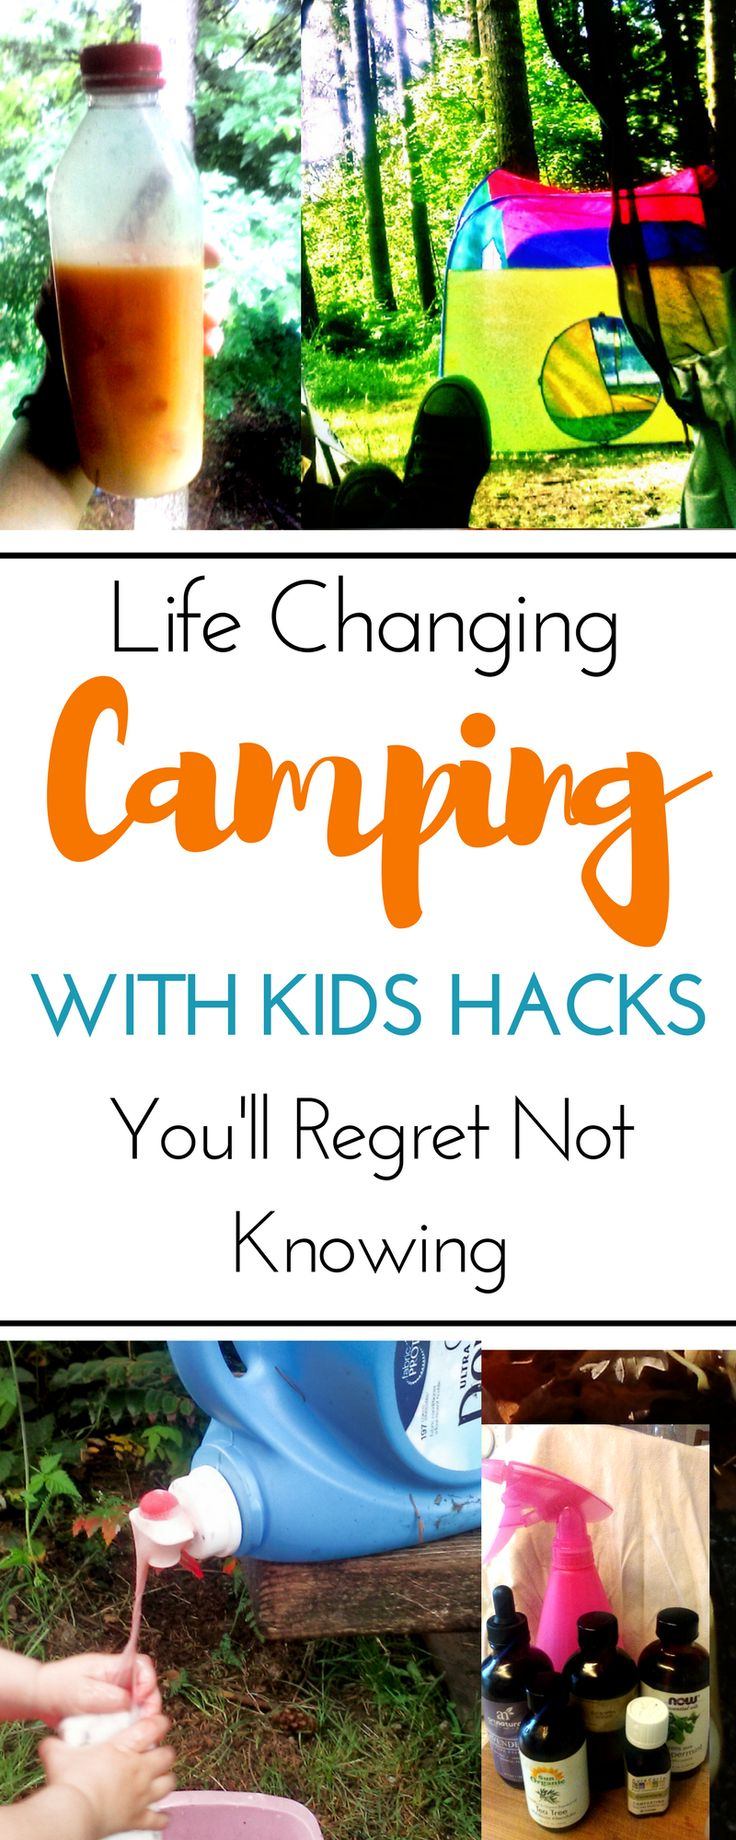 This roundup of great camping hacks will make camping with kids a breeze! 10 great camping tricks that are borderline genius. Awesome frugal tips using ingenious upcycling or items from the dollar tree to create food ideas, tent and sleeping hacks, fun ideas for toddlers, DIY bugs spray using essential oils, and more. These hacks are ingenious for families: for adults and for kids. #camping #campingwithkids #campinghacks